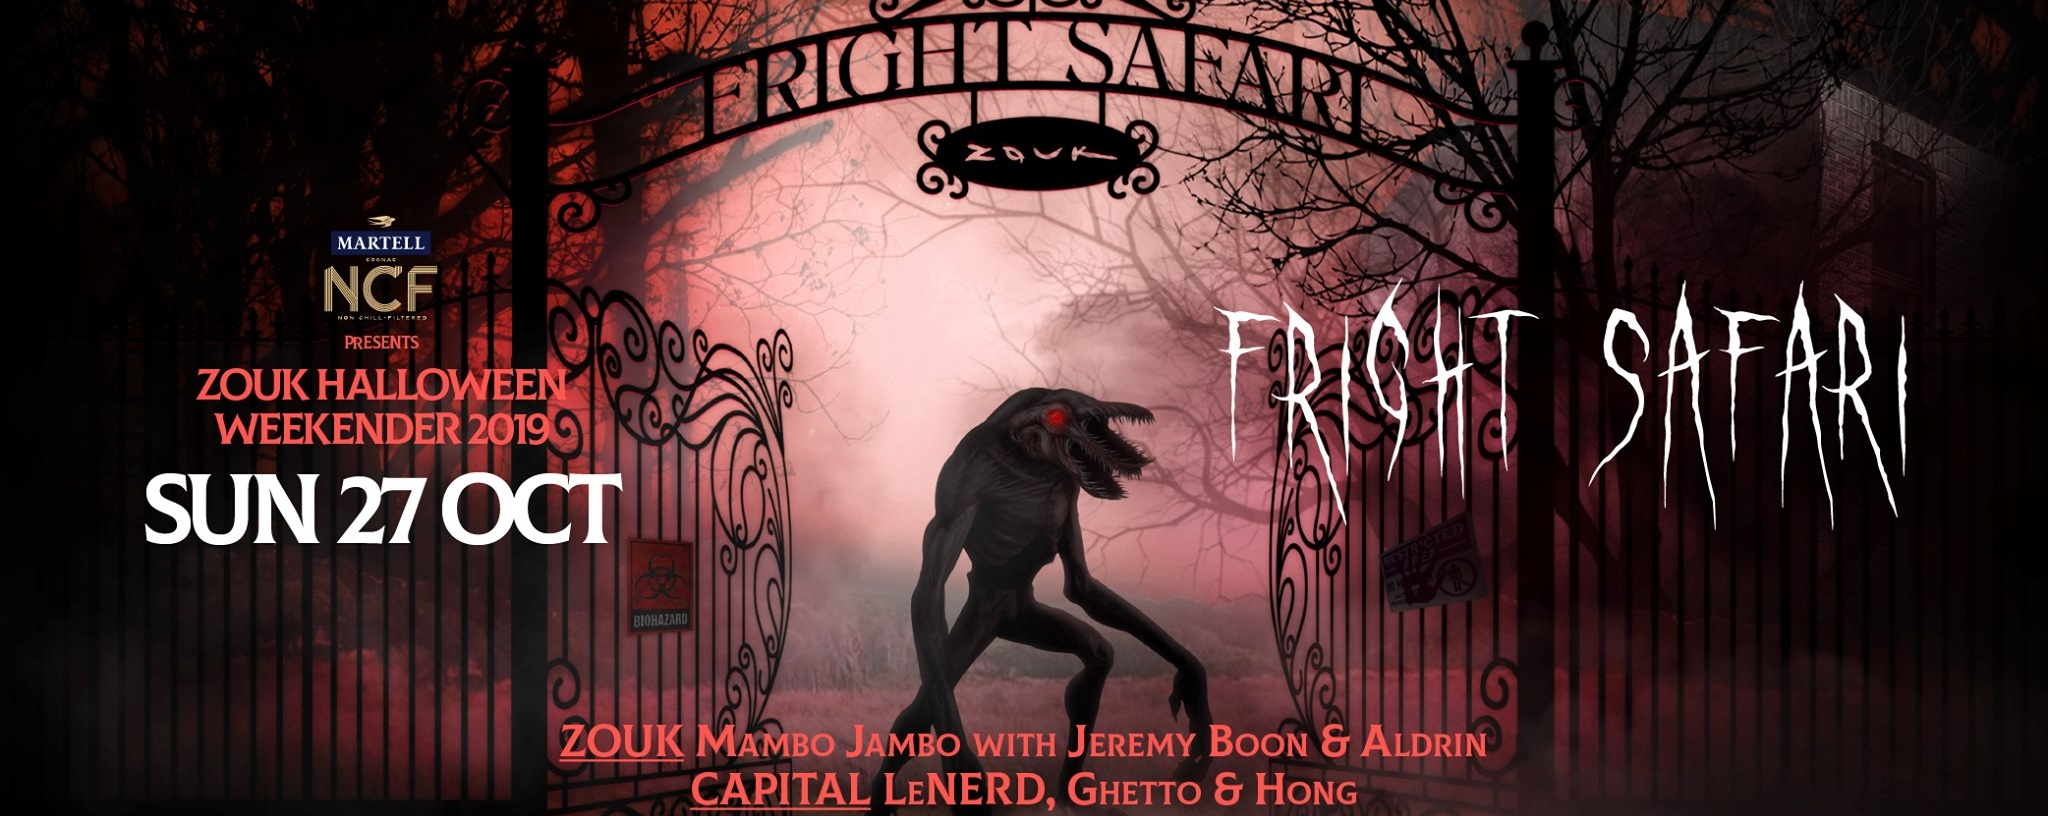 MARTELL NCF PRESENTS FRIGHT SAFARI FT. MAMBO JAMBO WITH JEREMY BOON & ALDRIN